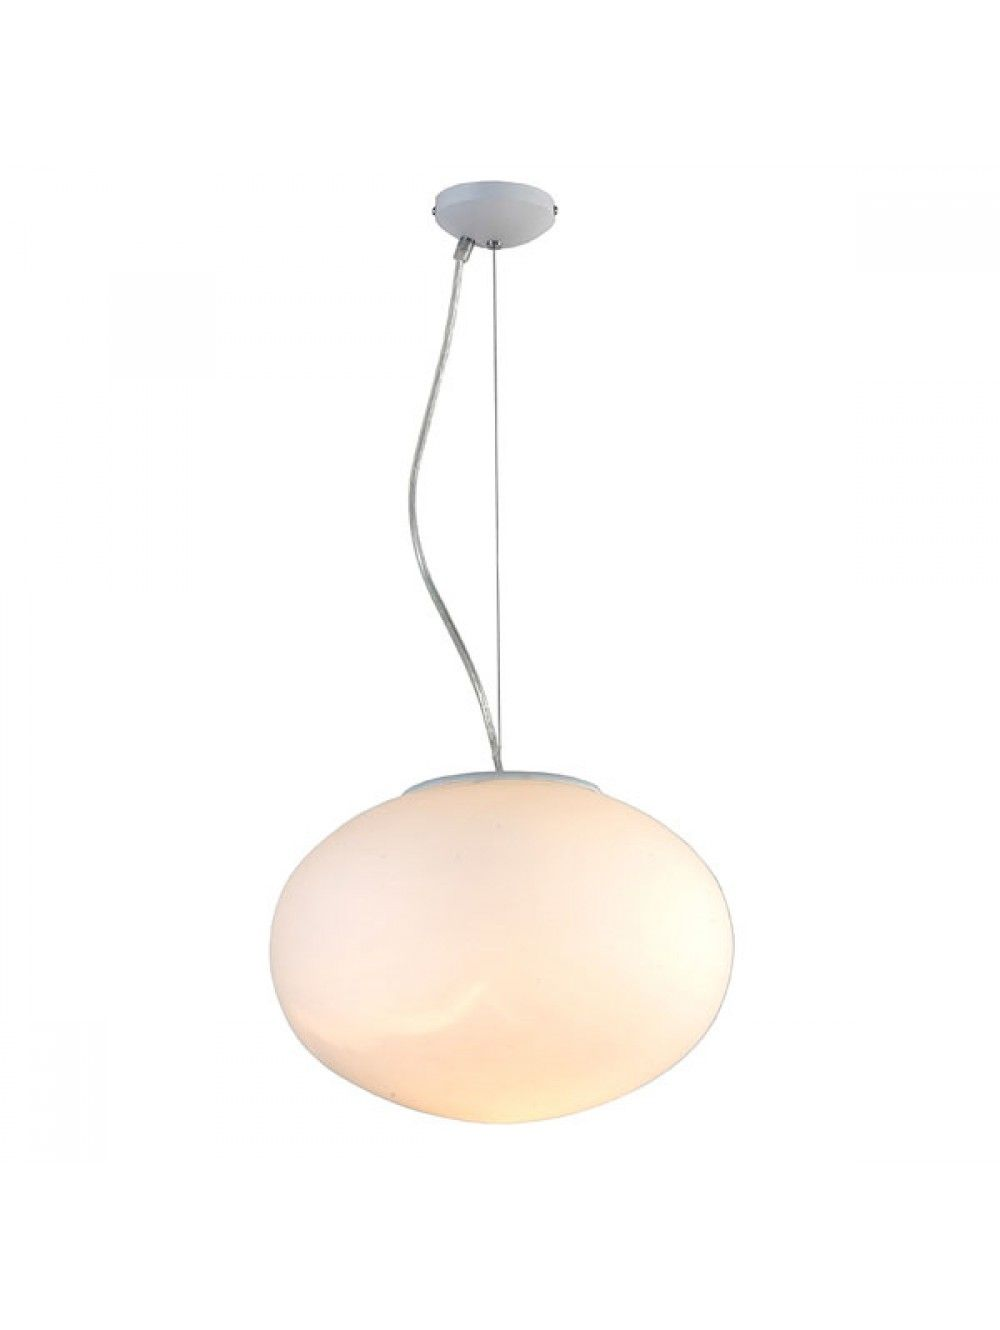 Glass Pendant Light In Frosted Globe Design